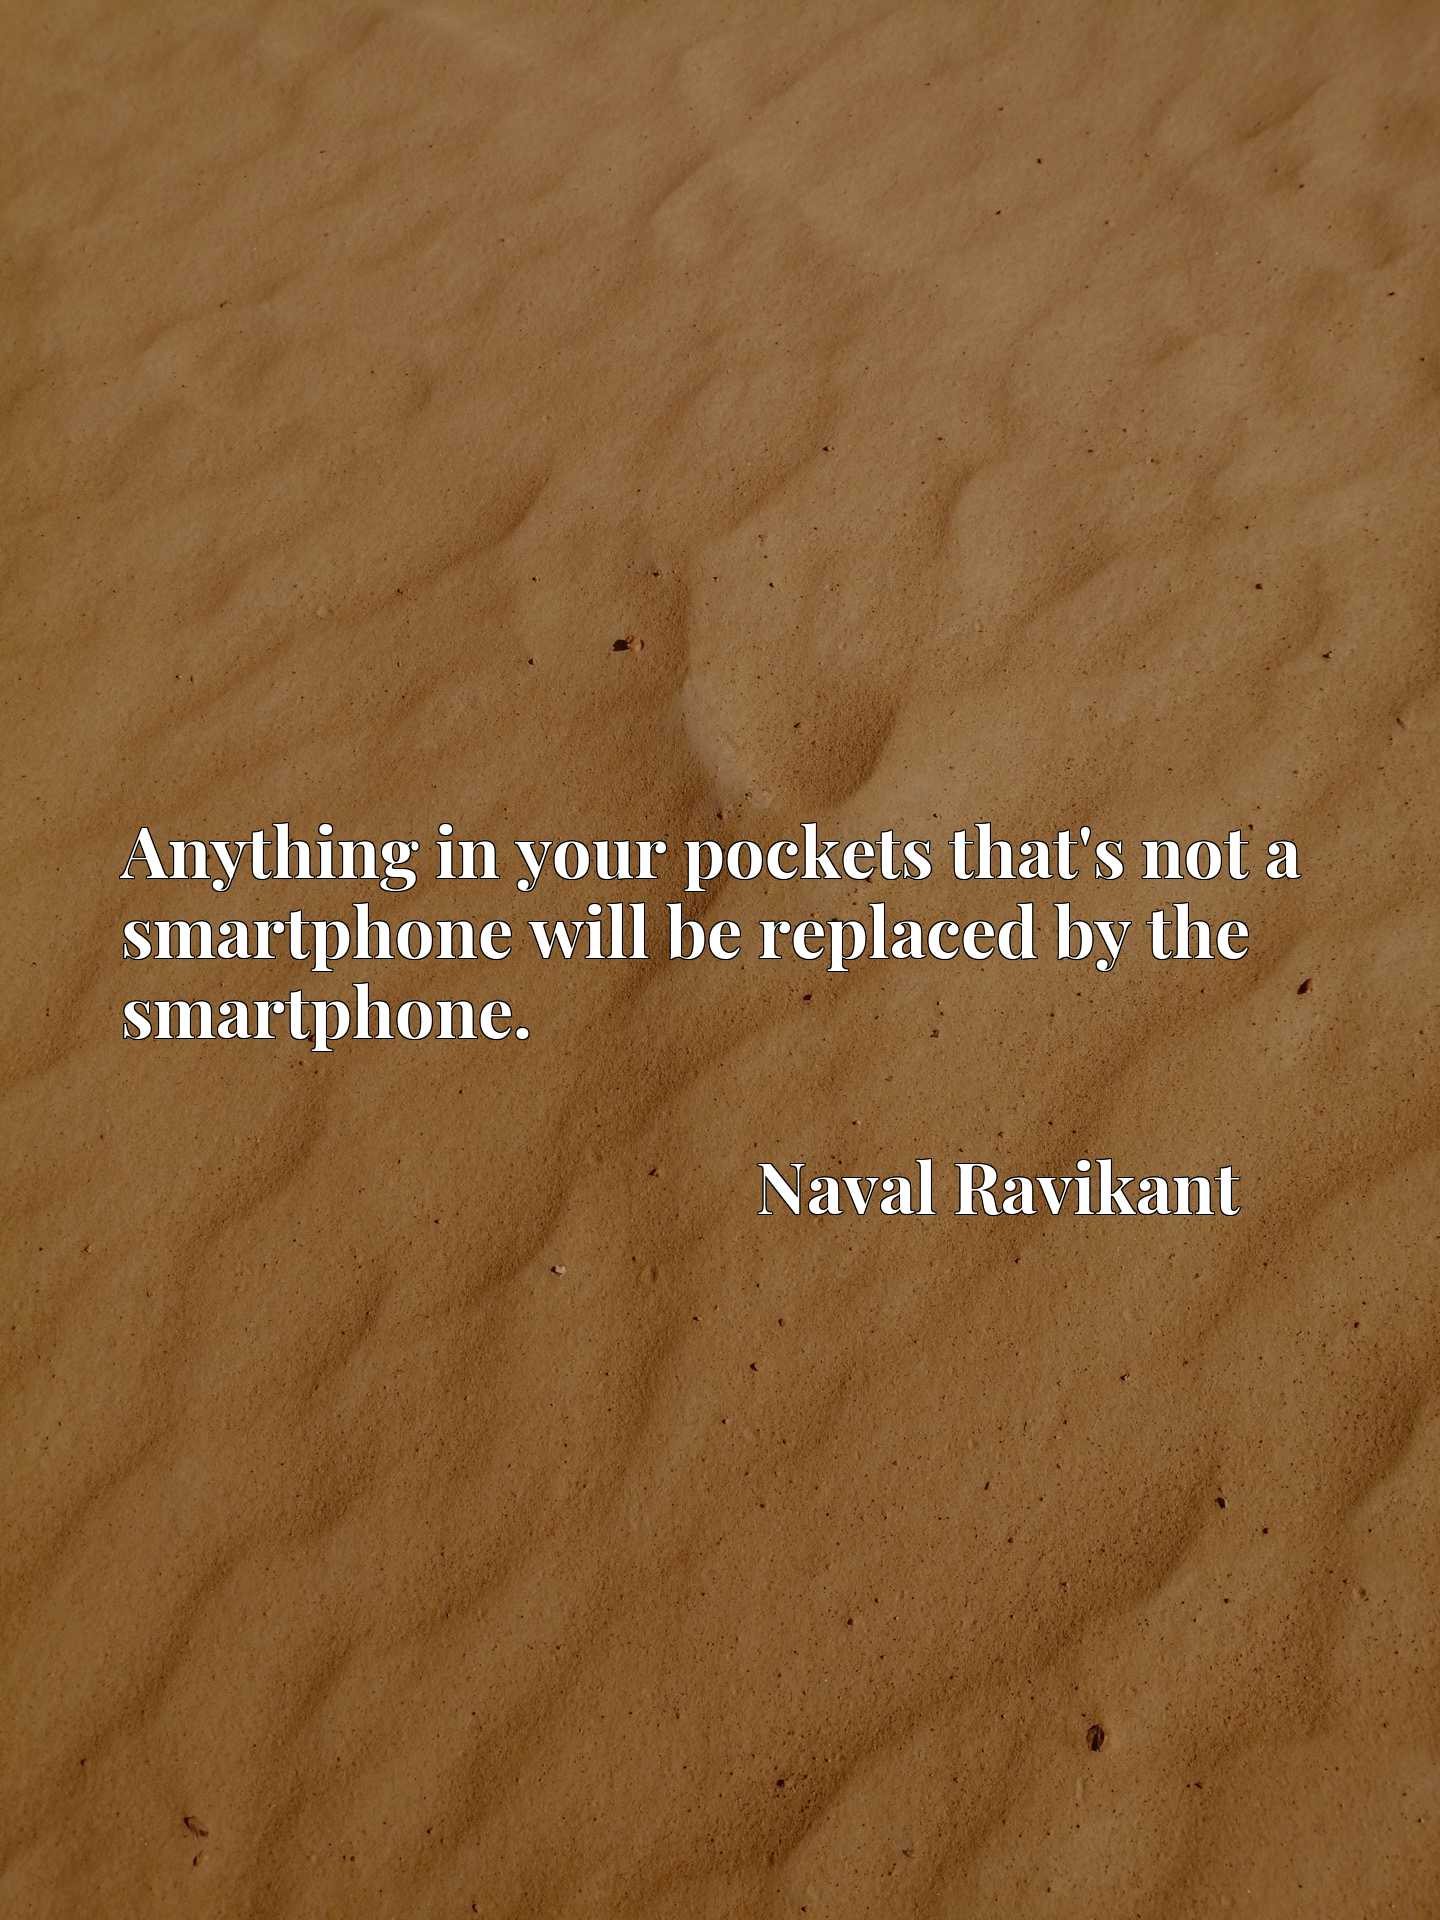 Anything in your pockets that's not a smartphone will be replaced by the smartphone.